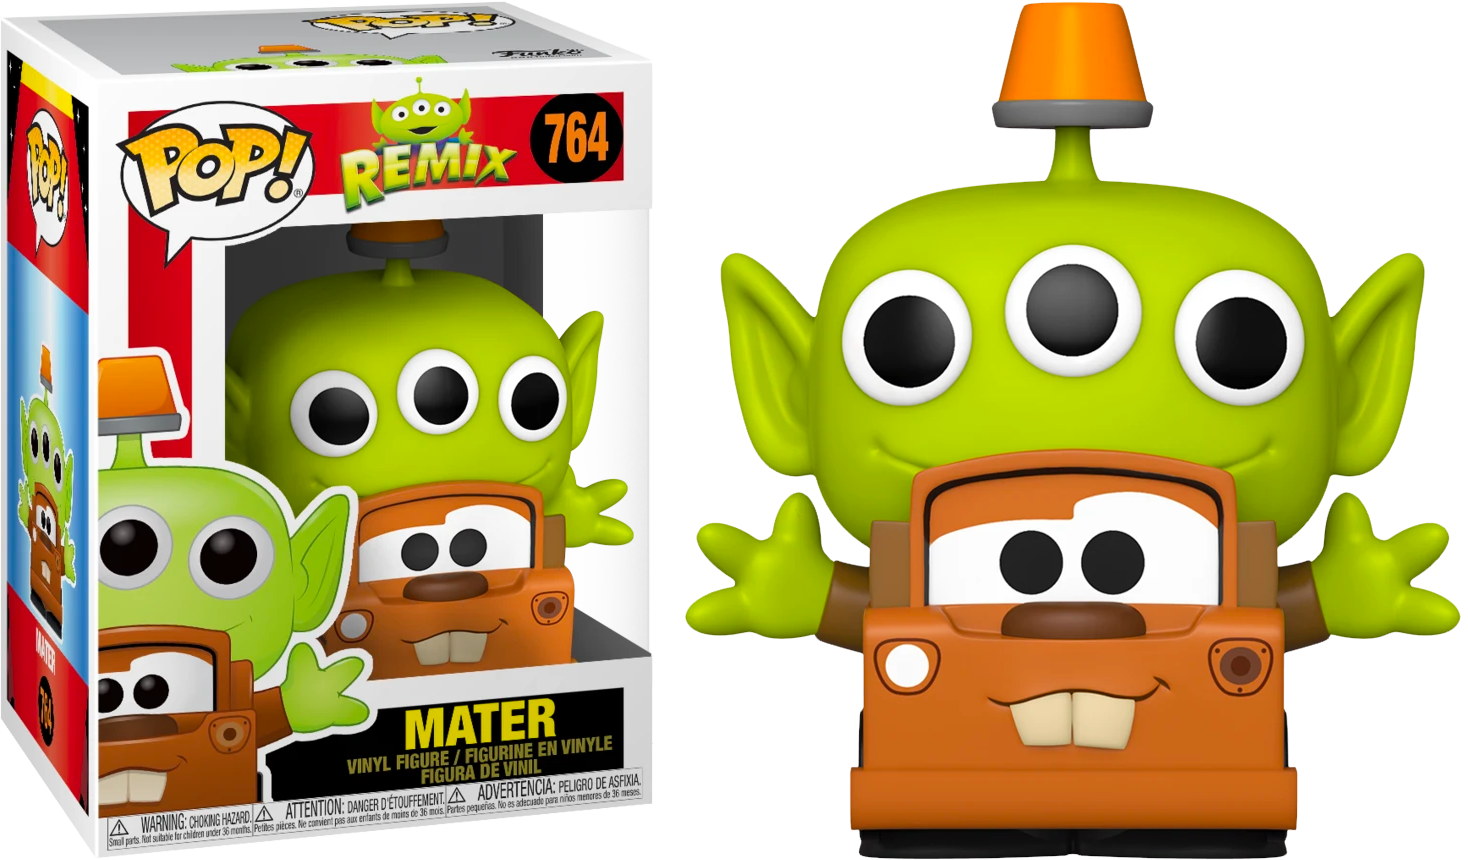 Pixar - Alien Remix Mater Pop! Vinyl Figure